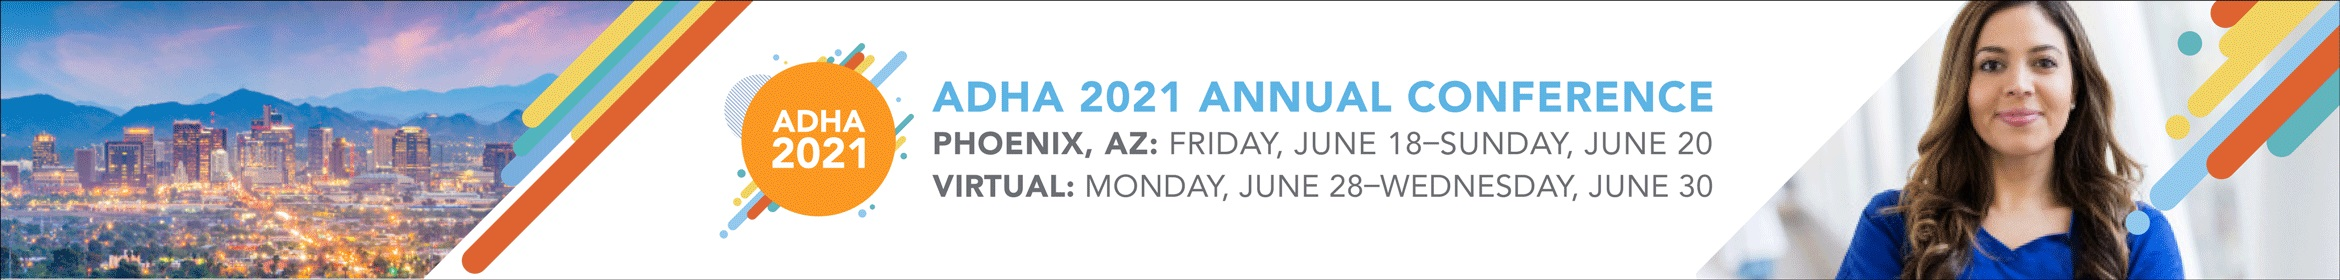 ADHA 2021 Annual Conference Main banner